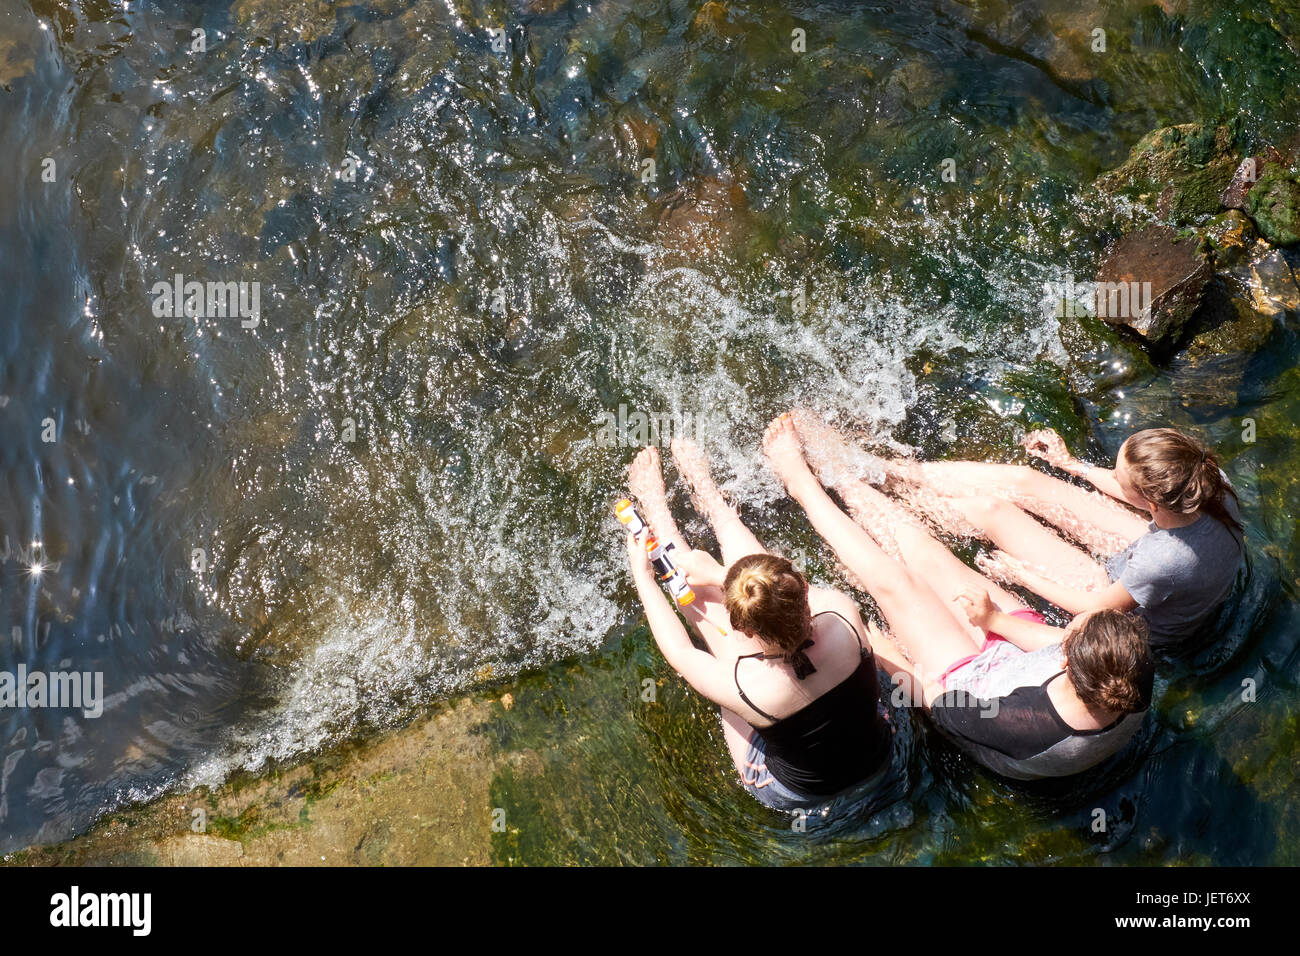 Three girls sit in a pool by a weir on the river Thames during a heat wave in summer. - Stock Image